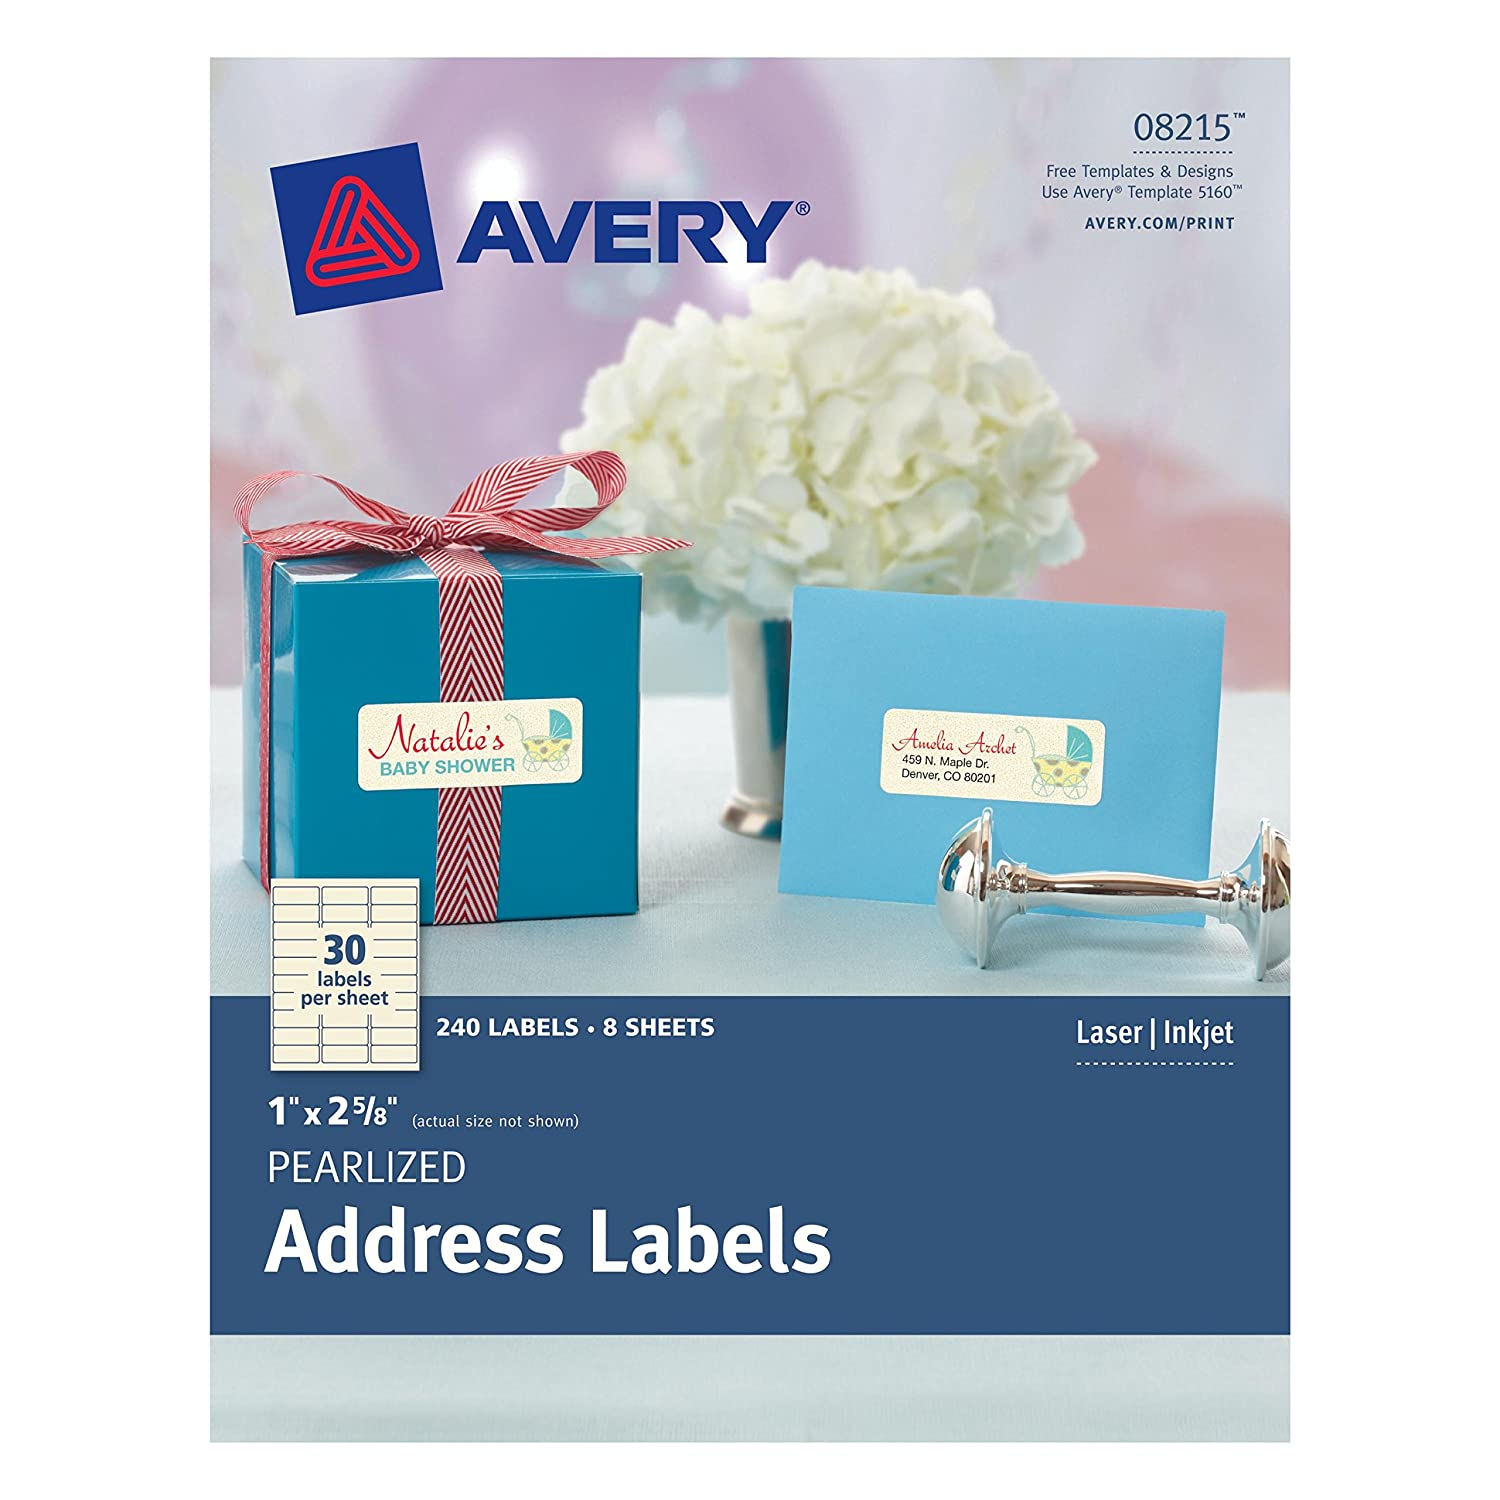 Avery 8987 template eliolera avery 8987 template eliolera pronofoot35fo Choice Image